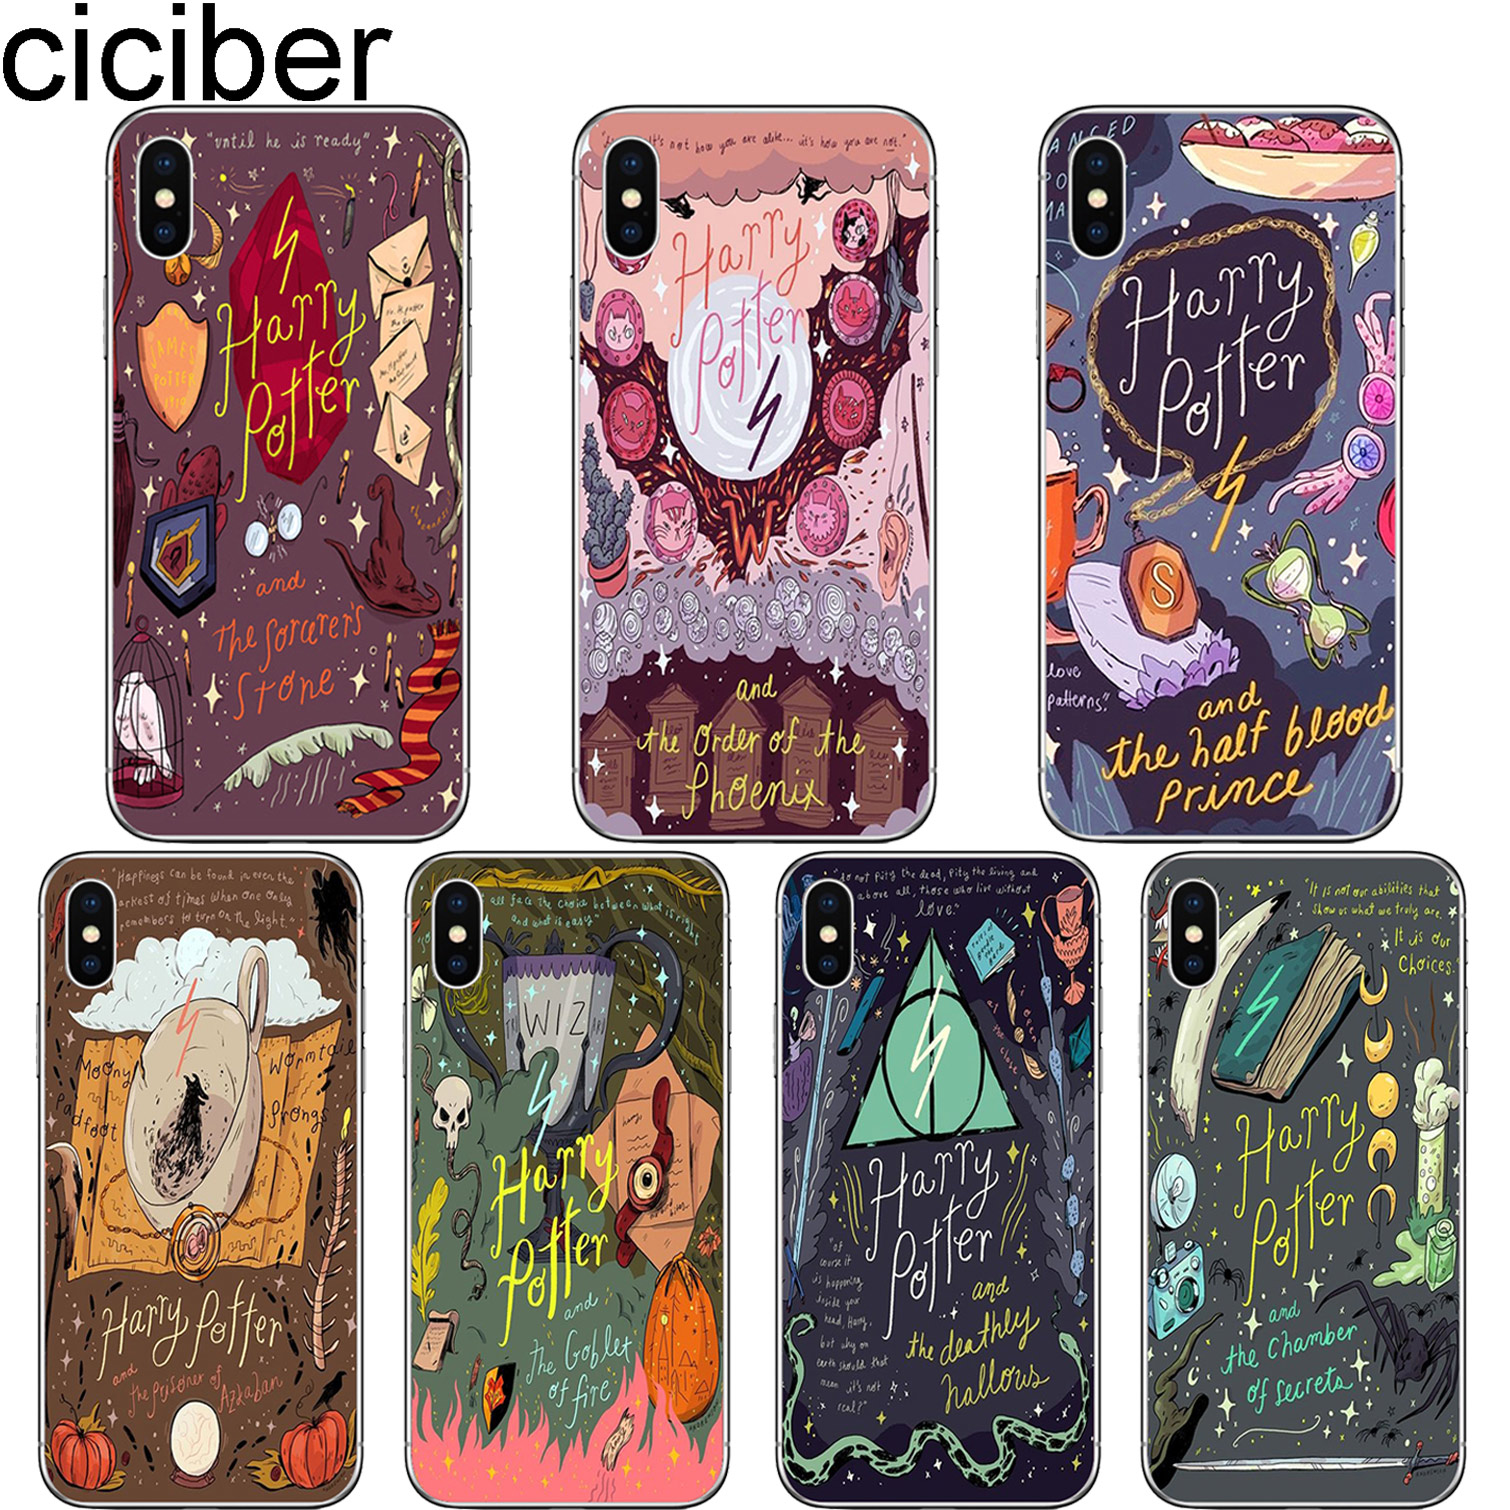 f74d64fbbf ciciber Harry Potter Hogwarts Soft Phone Cases Cover Telefoon Gevallen voor IPhone  6 6S 7 8 Plus 5S SE X XR XS Max Fundas Capa